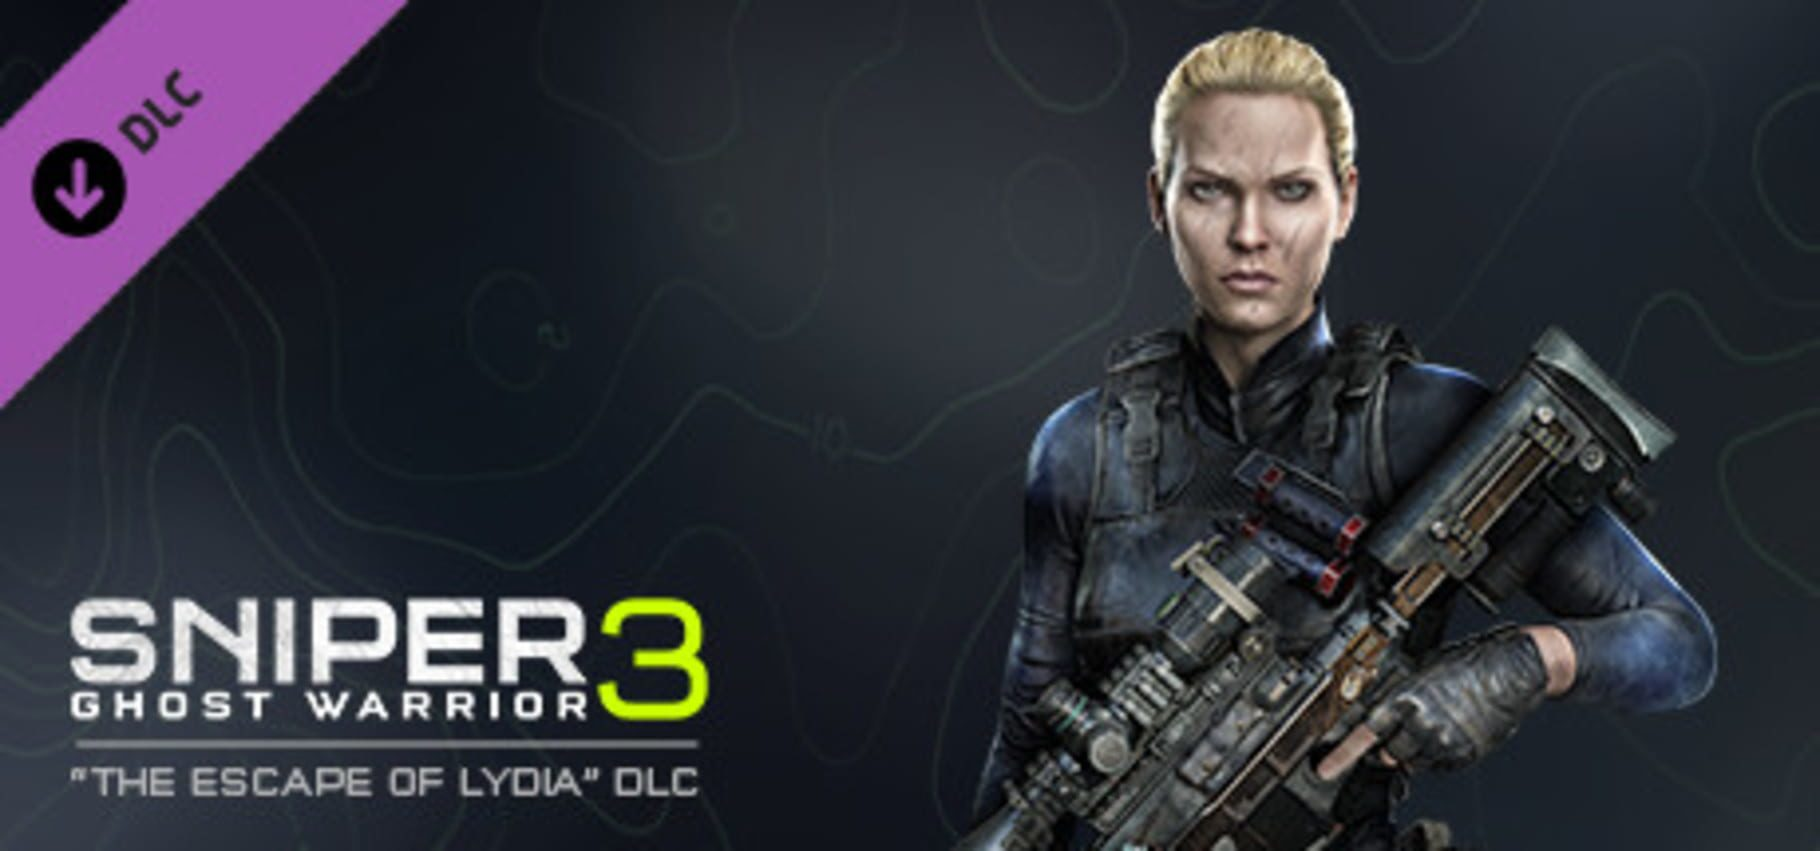 buy Sniper Ghost Warrior 3 - The Escape of Lydia cd key for all platform